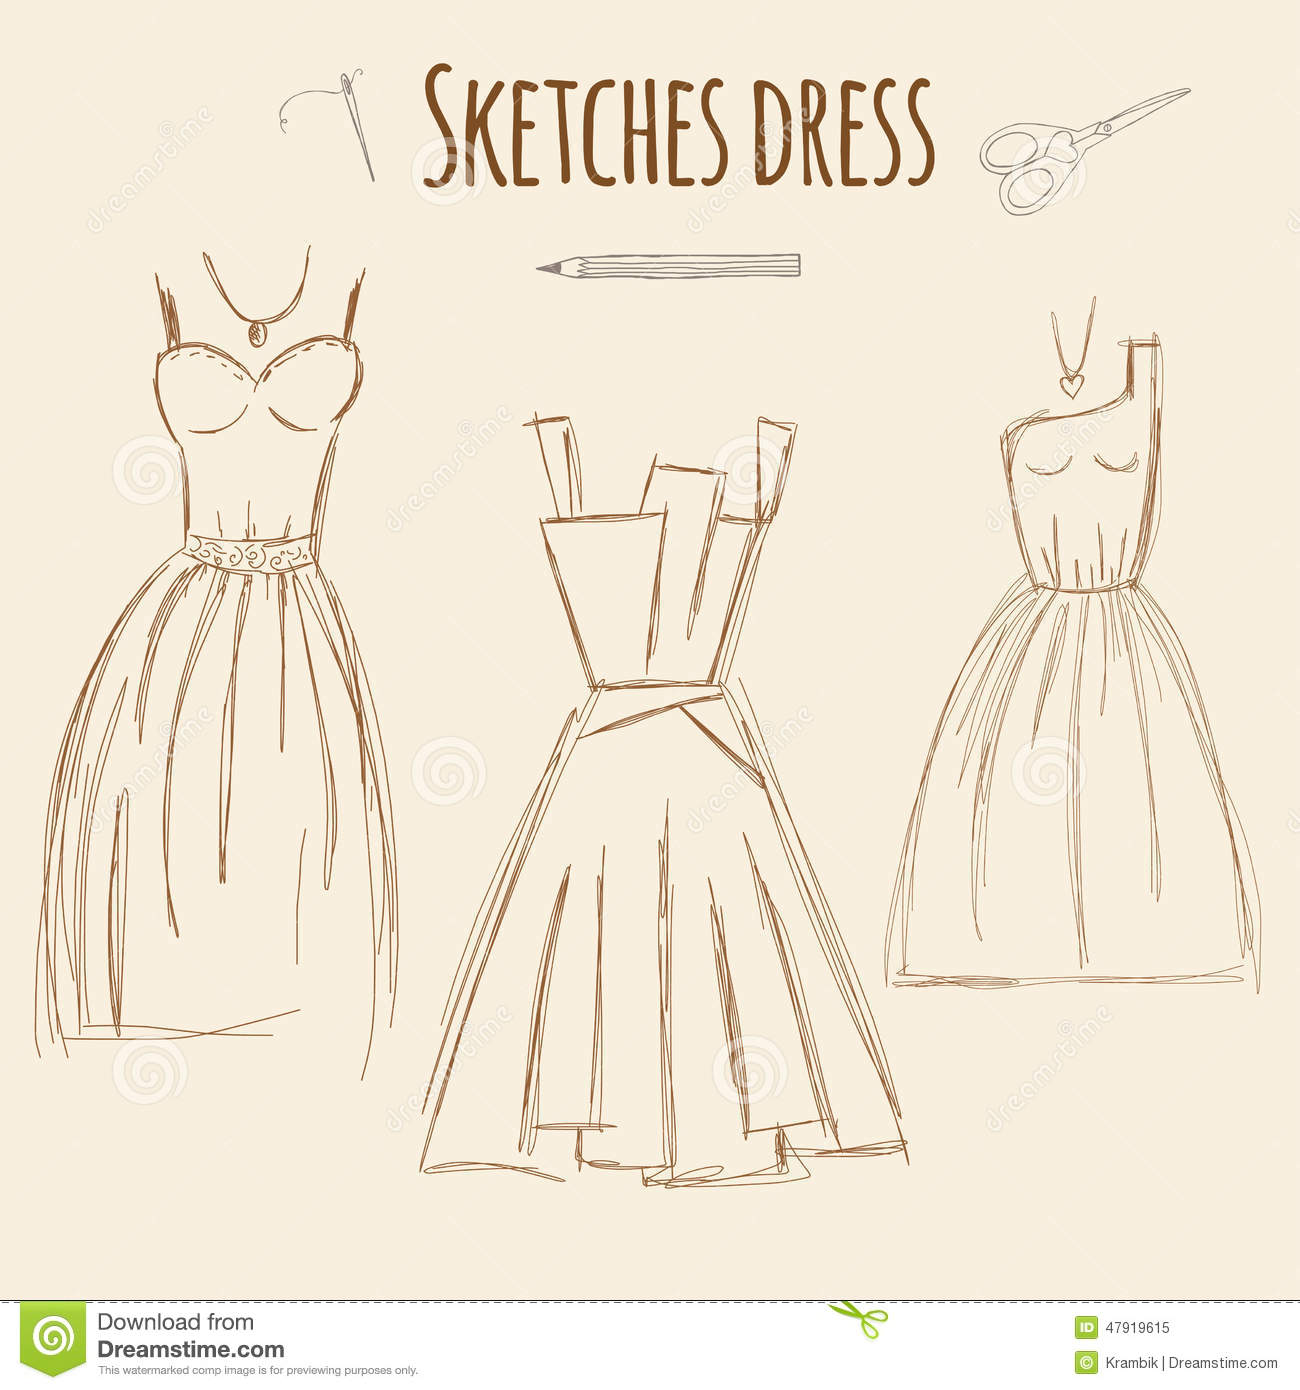 Sketches Dress Hand Drawn Illustration Stock Vector